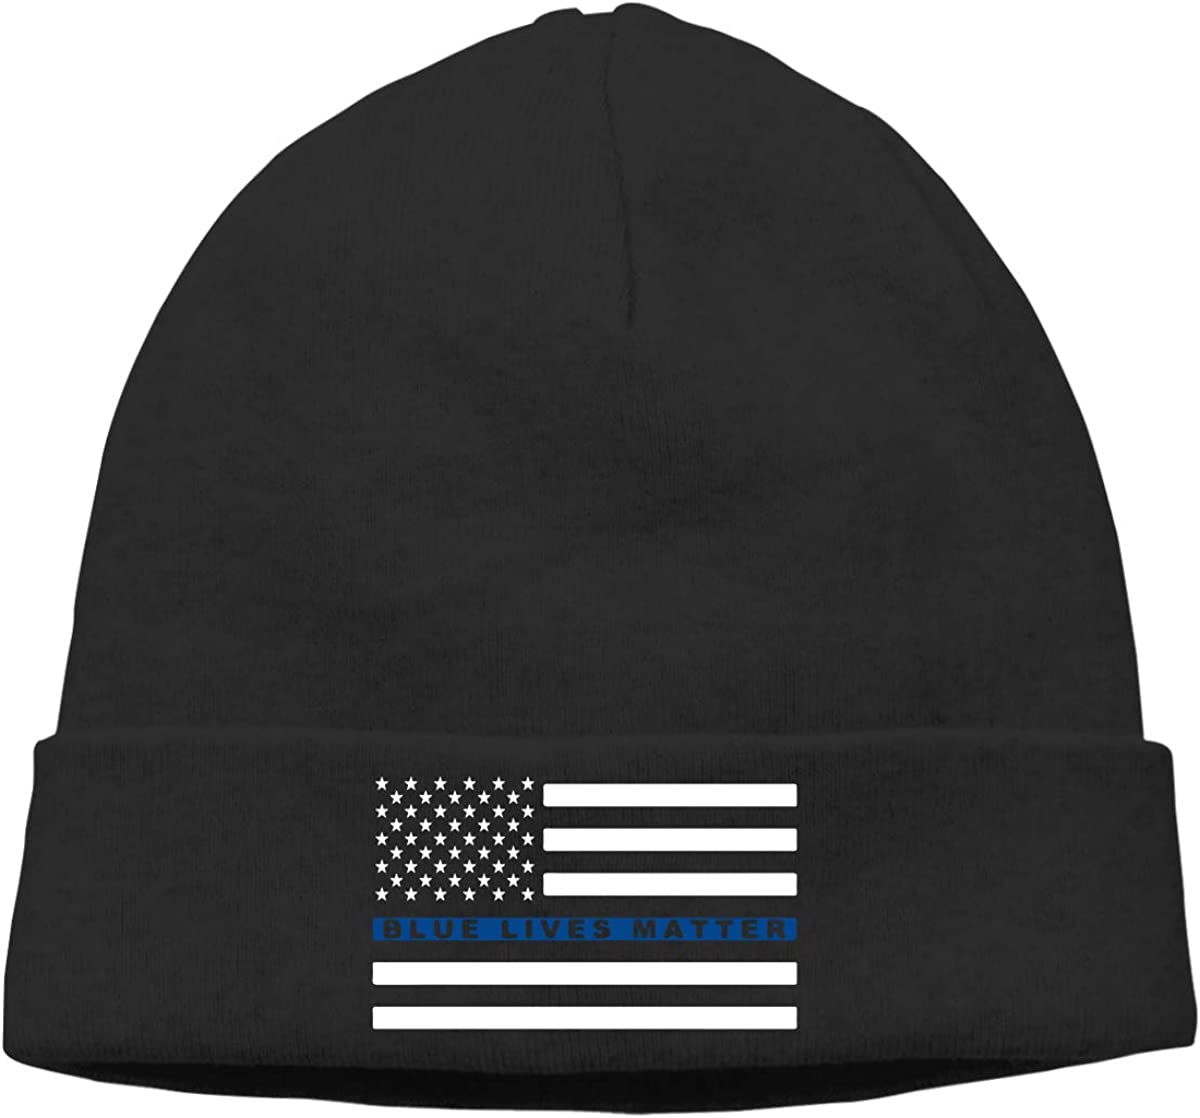 Thin Stretchy /& Soft Winter Cap Thin Blue Line Flag Women Men Solid Color Beanie Hat Blue Lives Matter